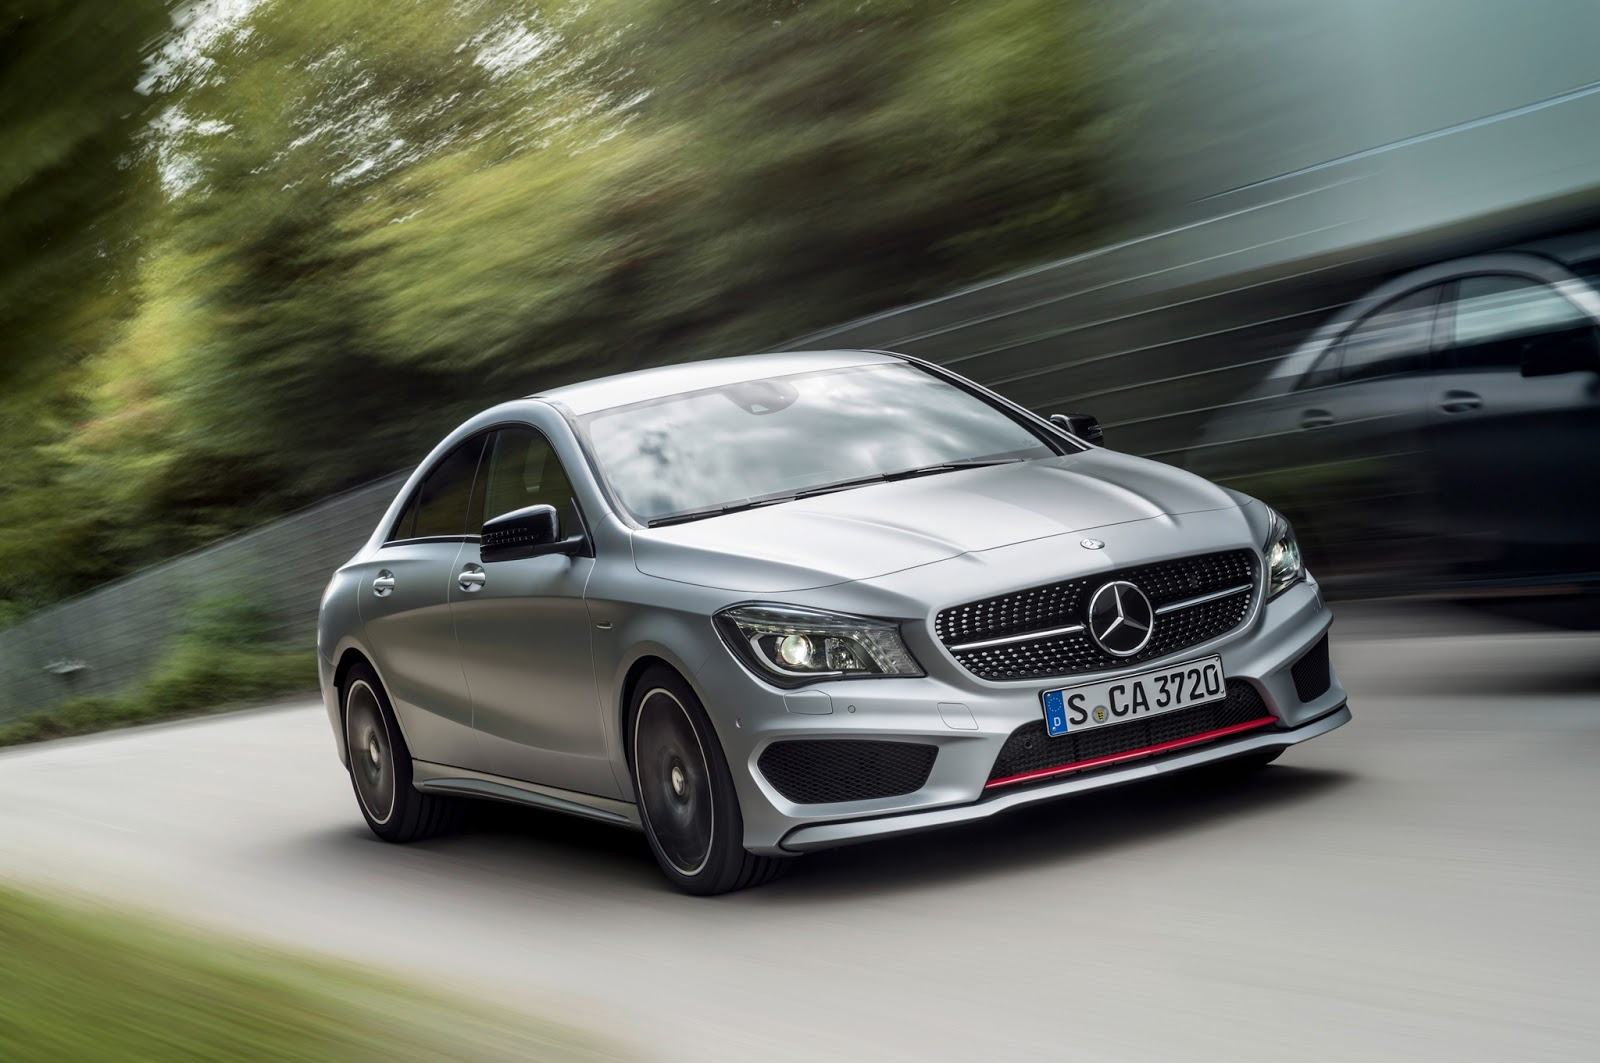 Mercedes coupe c 250 2015 2017 2018 best cars reviews for Mercedes benz cla250c